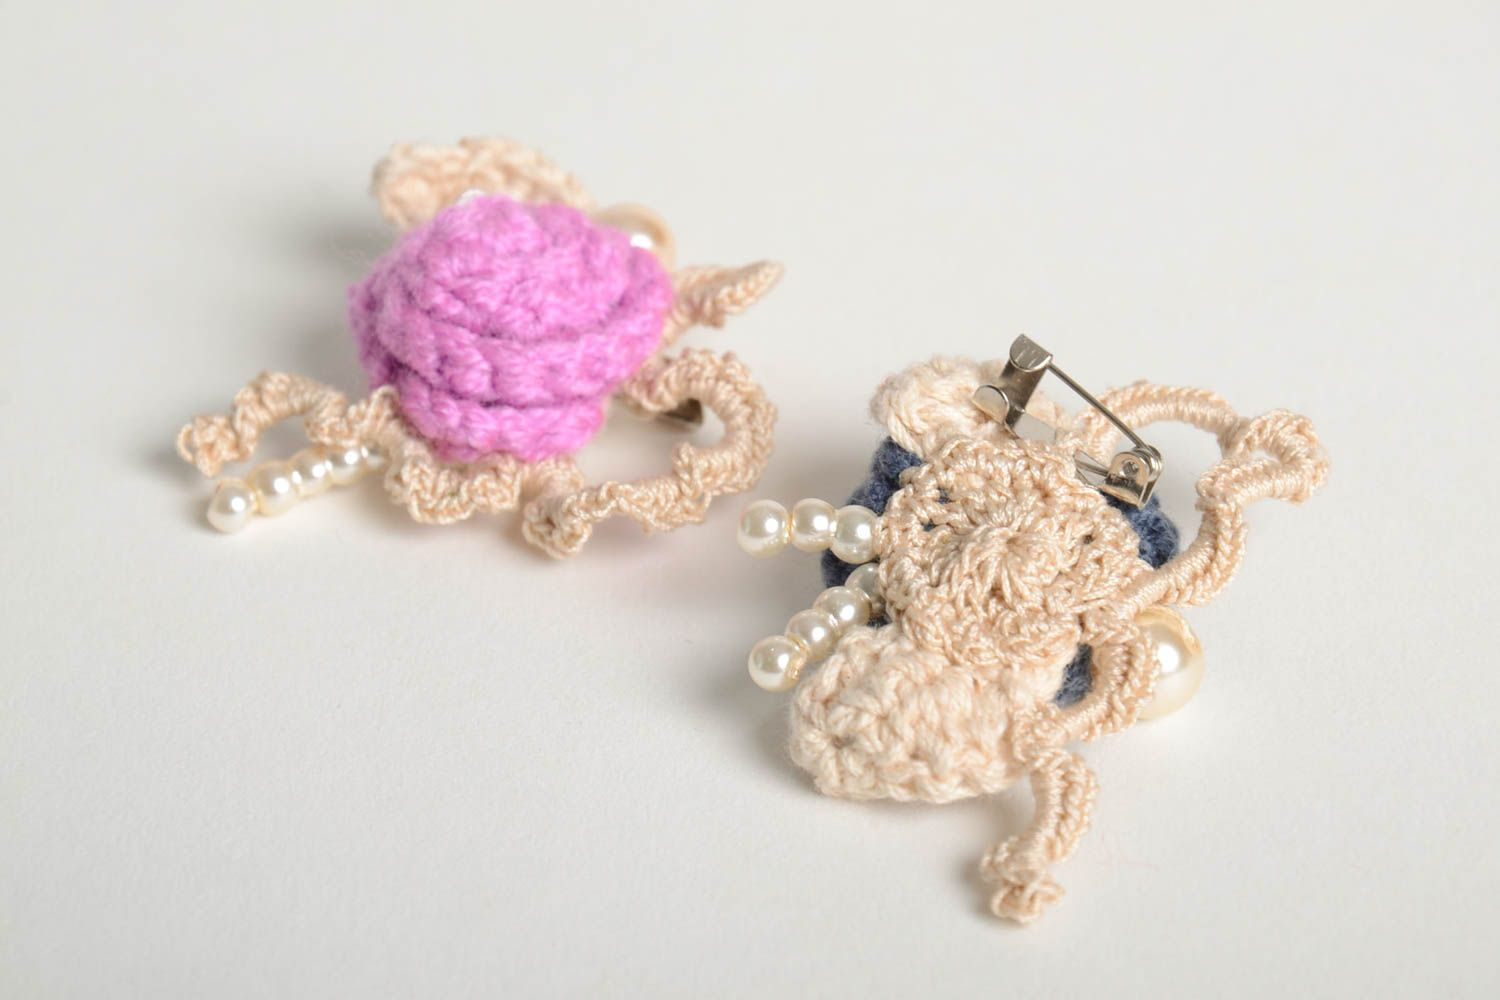 Crochet brooch handmade brooches textile jewelry designer accessories for girls photo 3